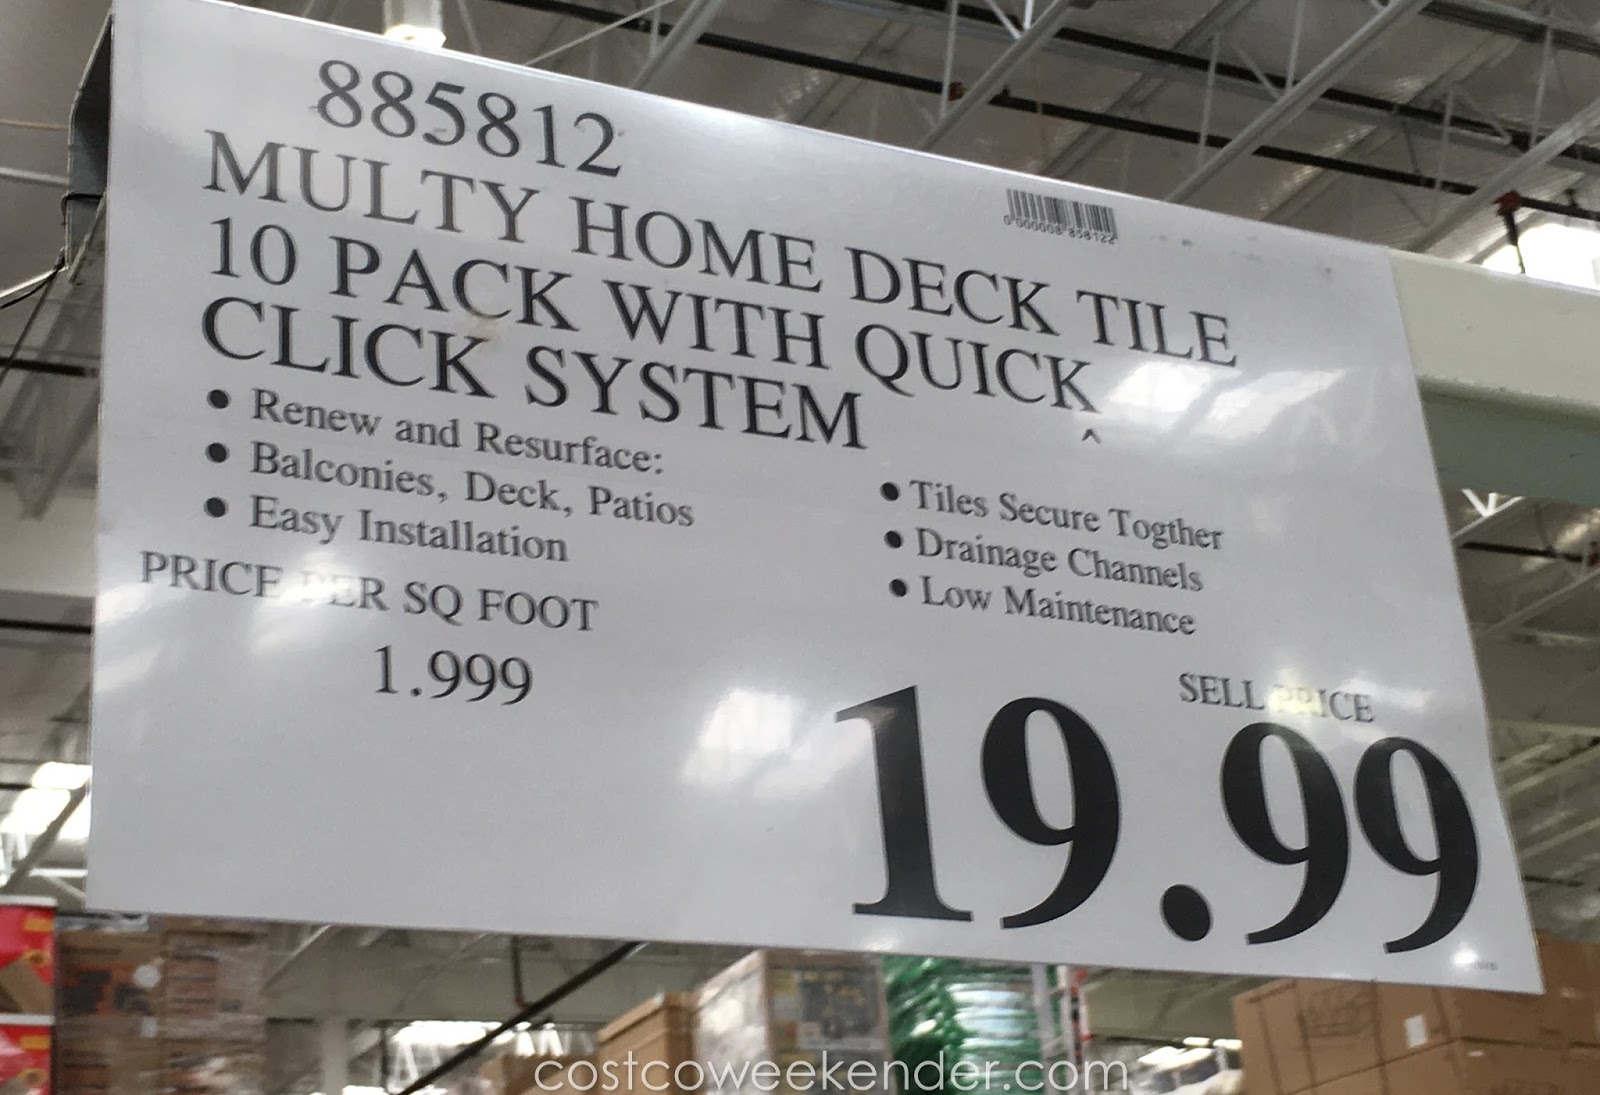 Deal For The Multy Home Deck Tile At Costco